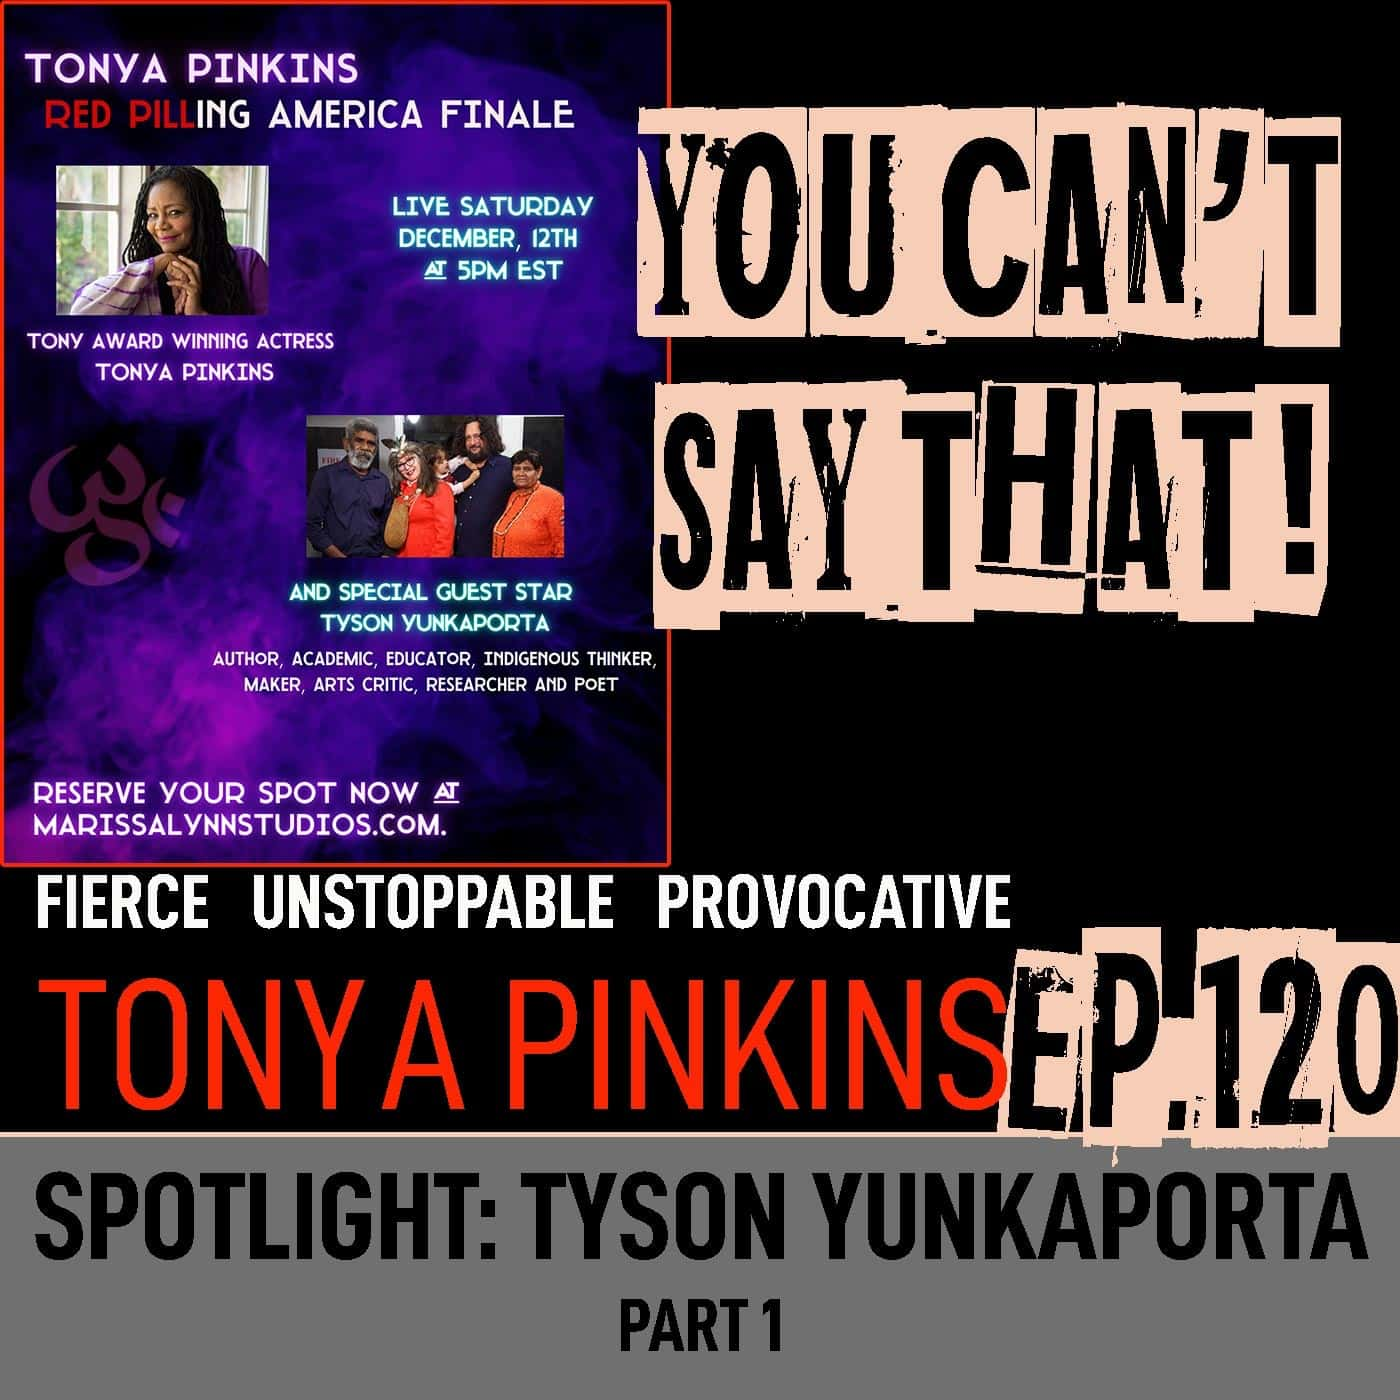 Ep120 - SPOTLIGHT: Red Pilling America with with Tyson Yunkaporta (Part 1)